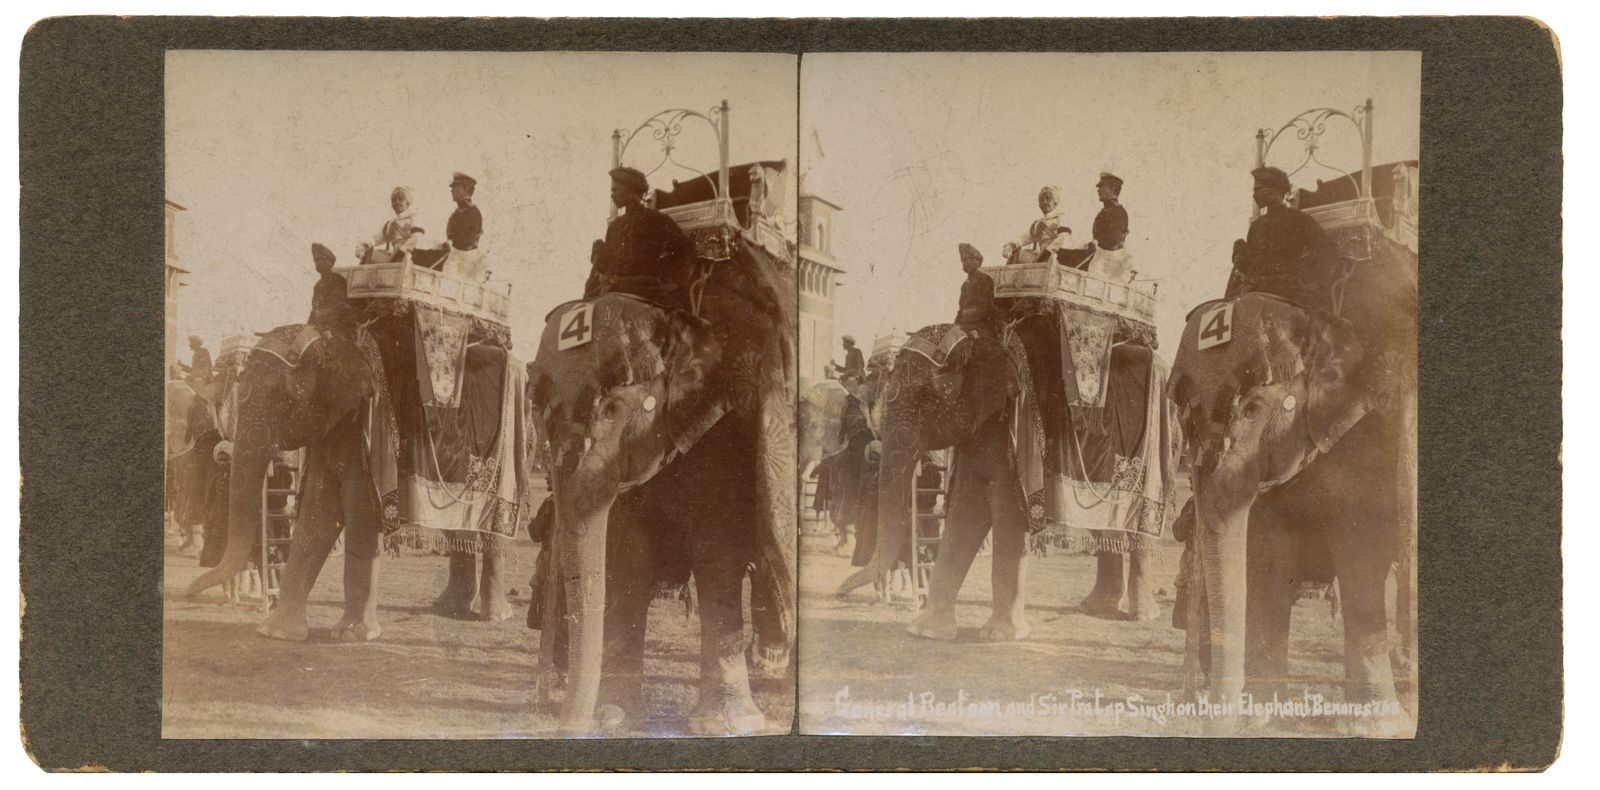 General Beatsan and sir Pratap Singh on their Elephant Beneres